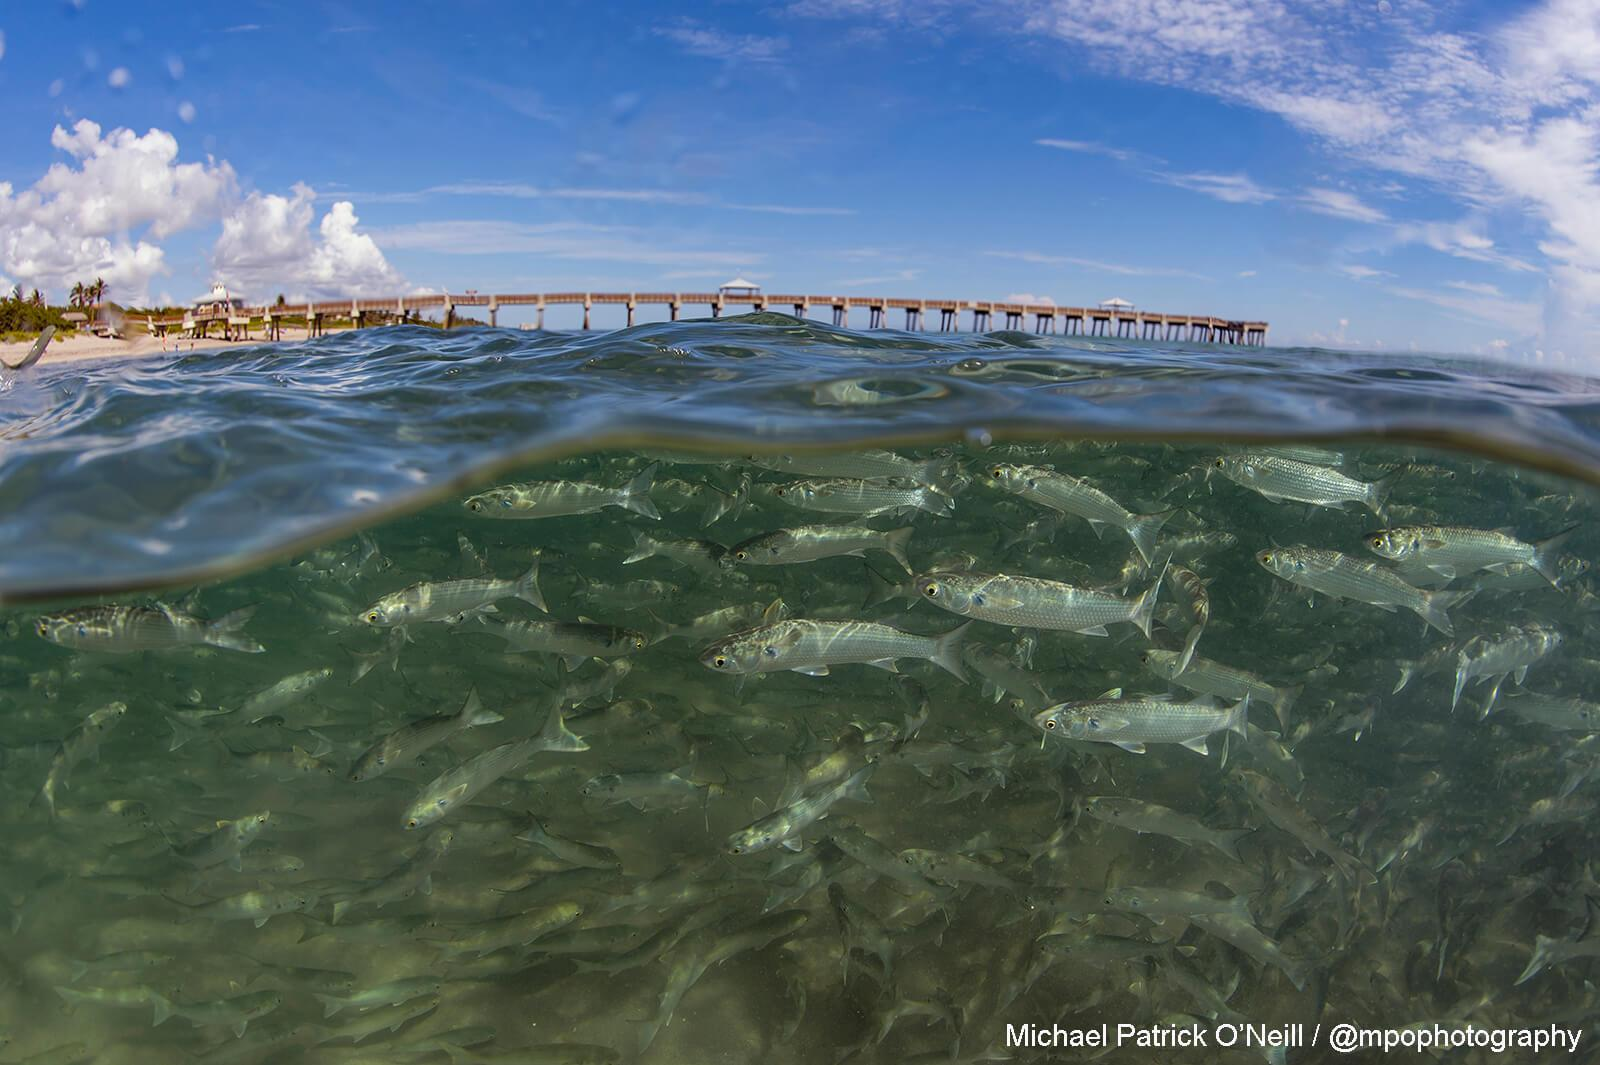 Mullet Migration. Underwater Photography by Michael Patrick O'Neill